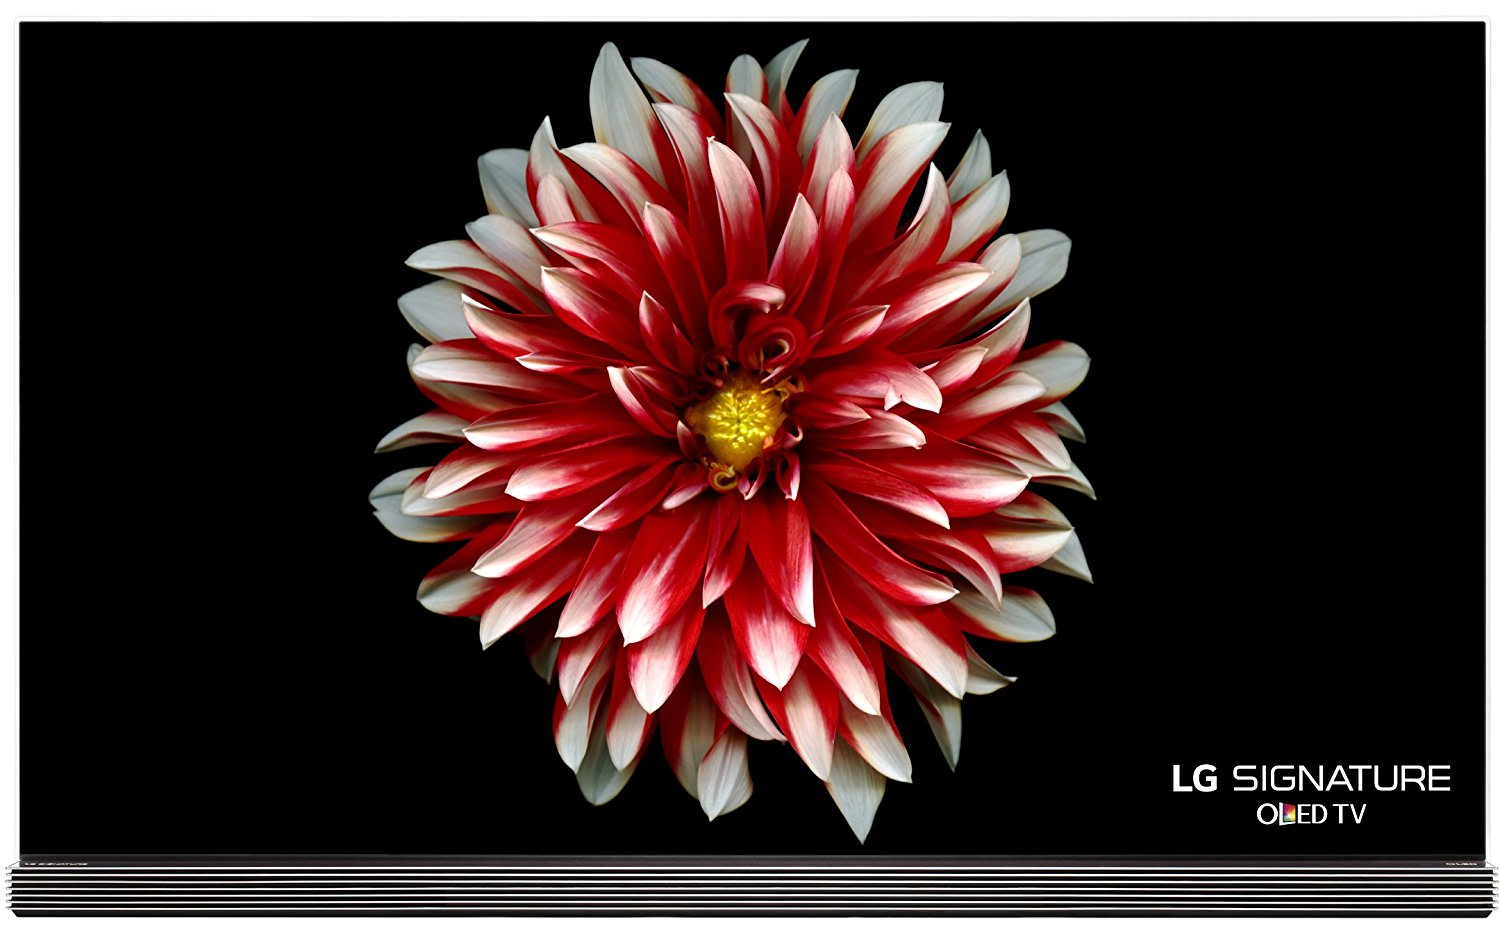 An image of LG OLED65G7P 65-Inch HDR 4K OLED TV